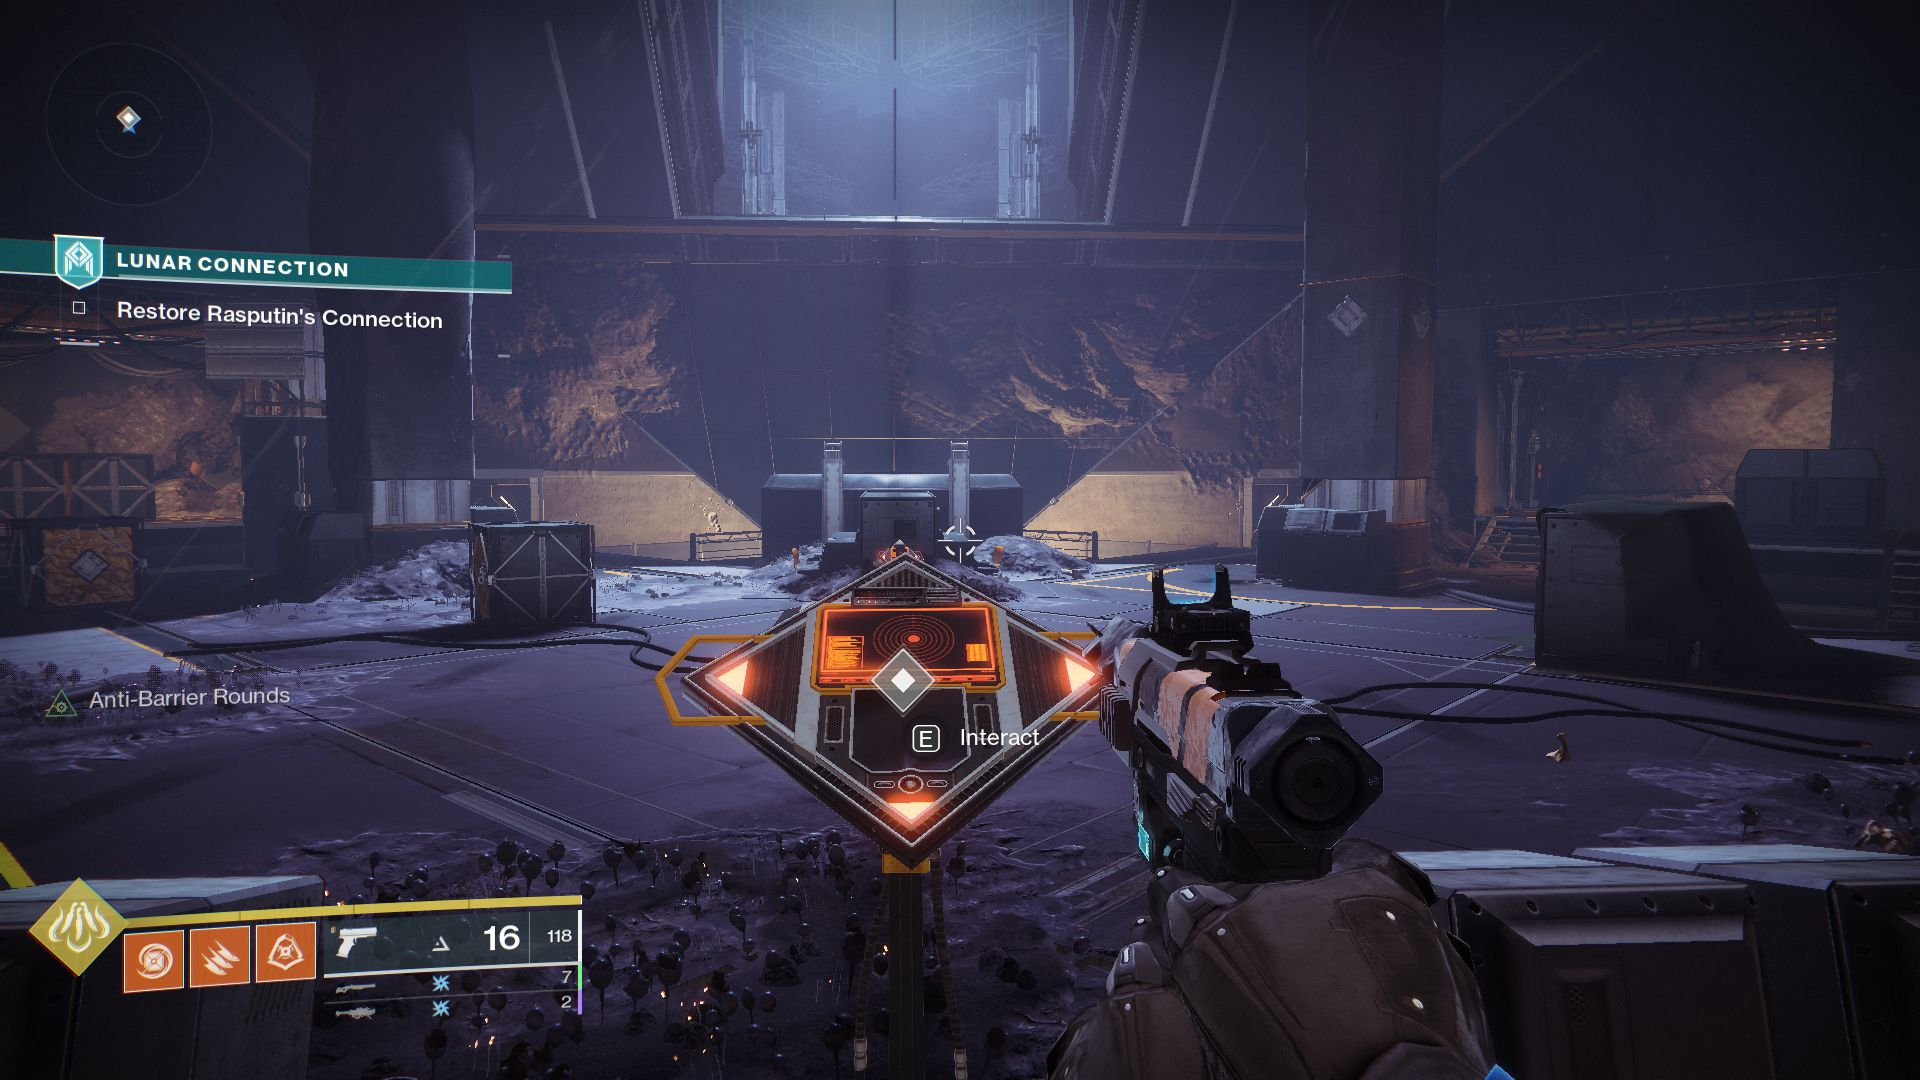 Image showing how to complete the Moon Bunker Buster in Destiny 2.